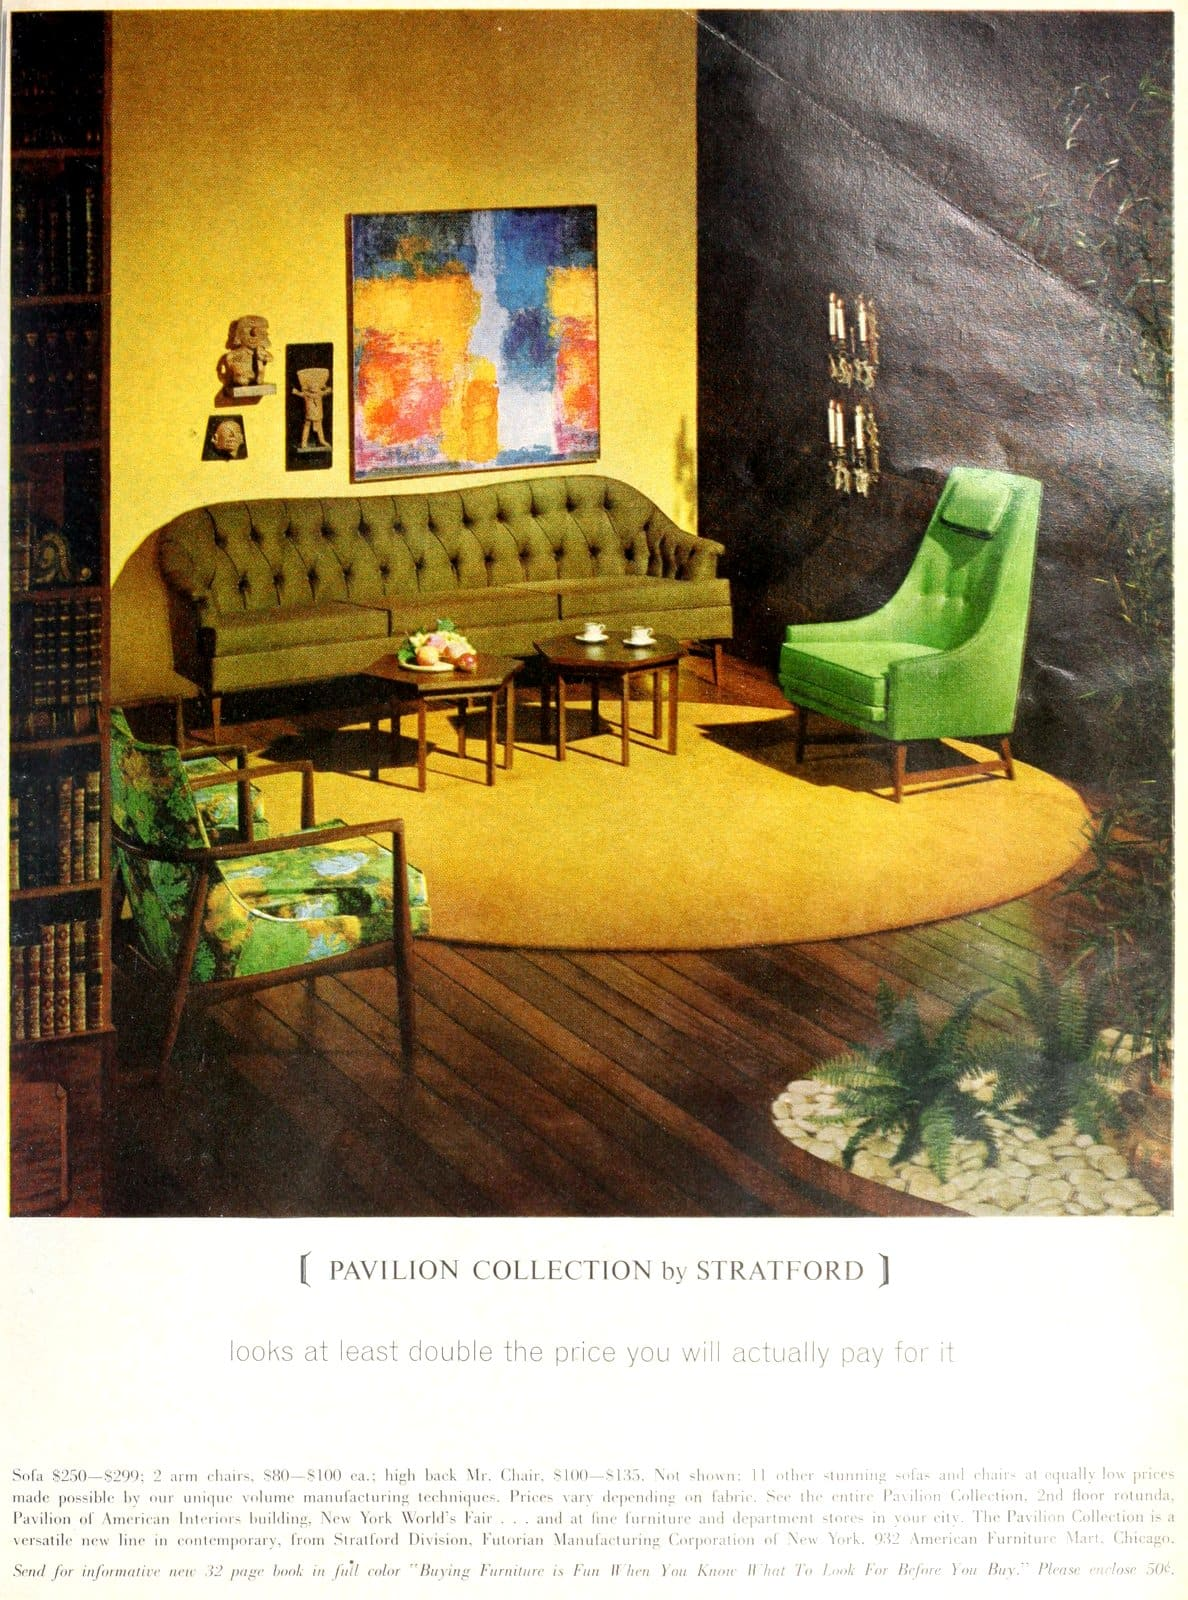 Retro green narrow-backed easy chair and midcentury modern armchair (1962)